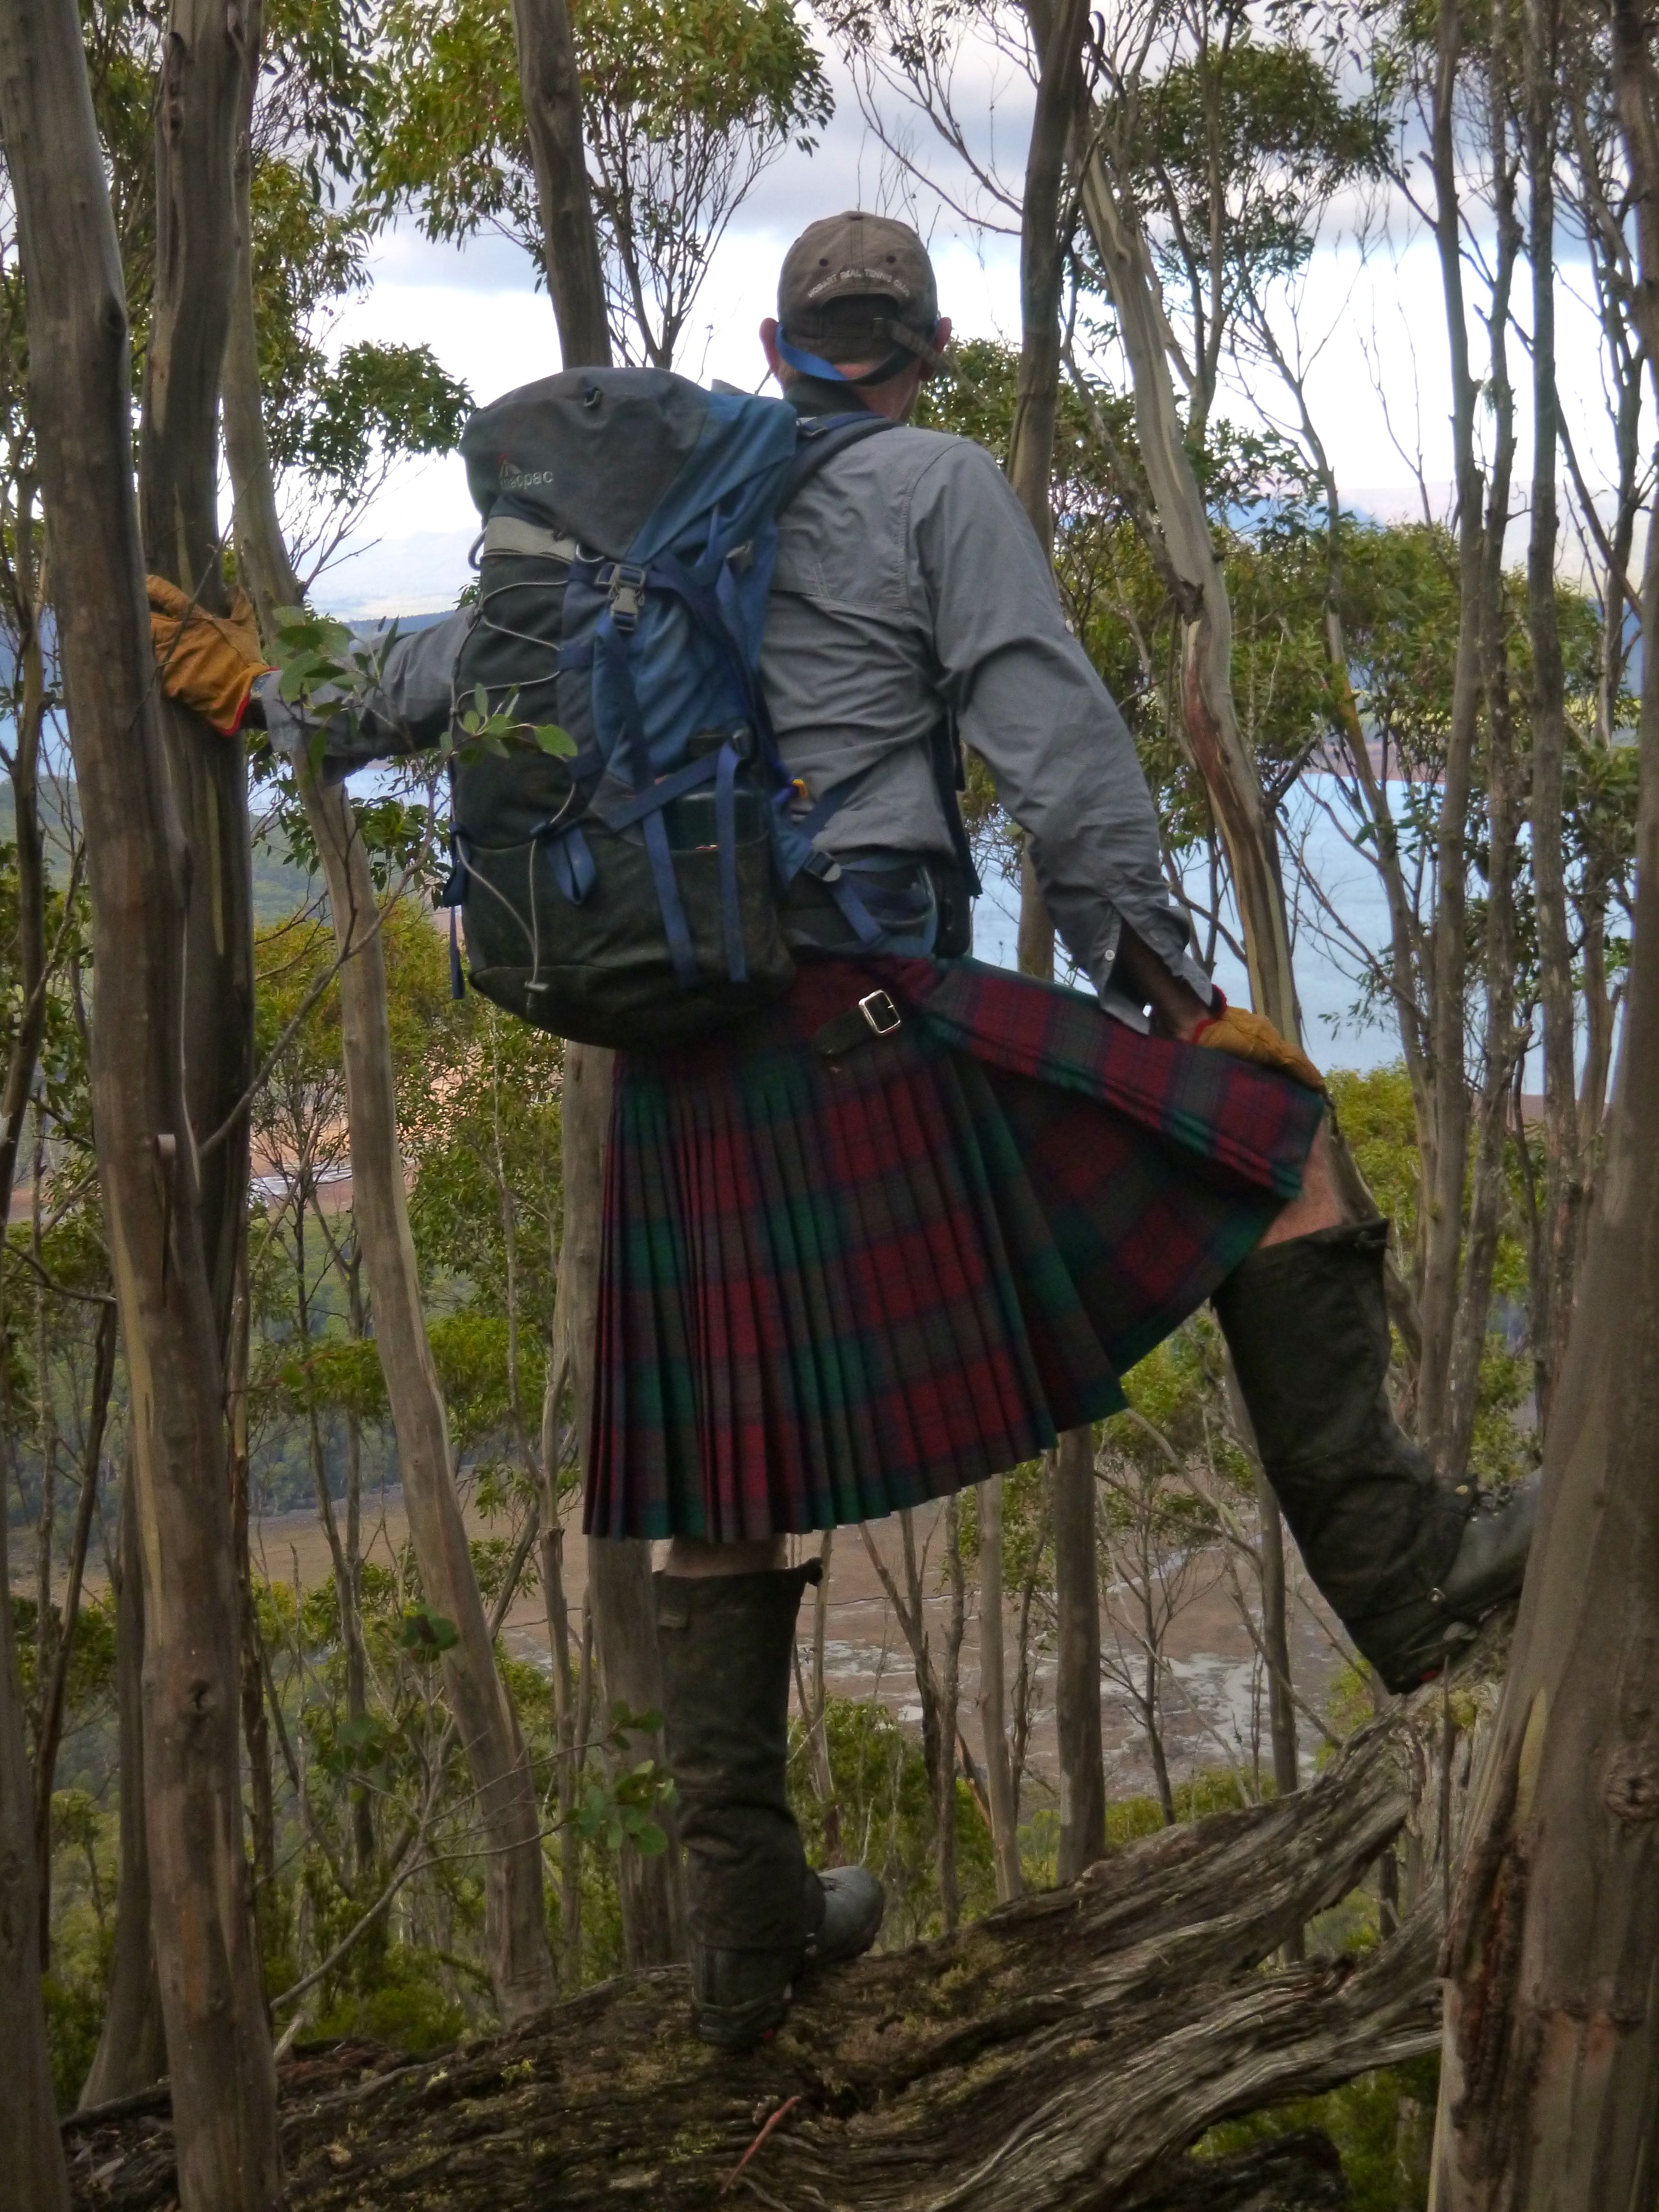 The kilt makes it's long awaited (threatened?) debut. On the summit of Mt Charles.